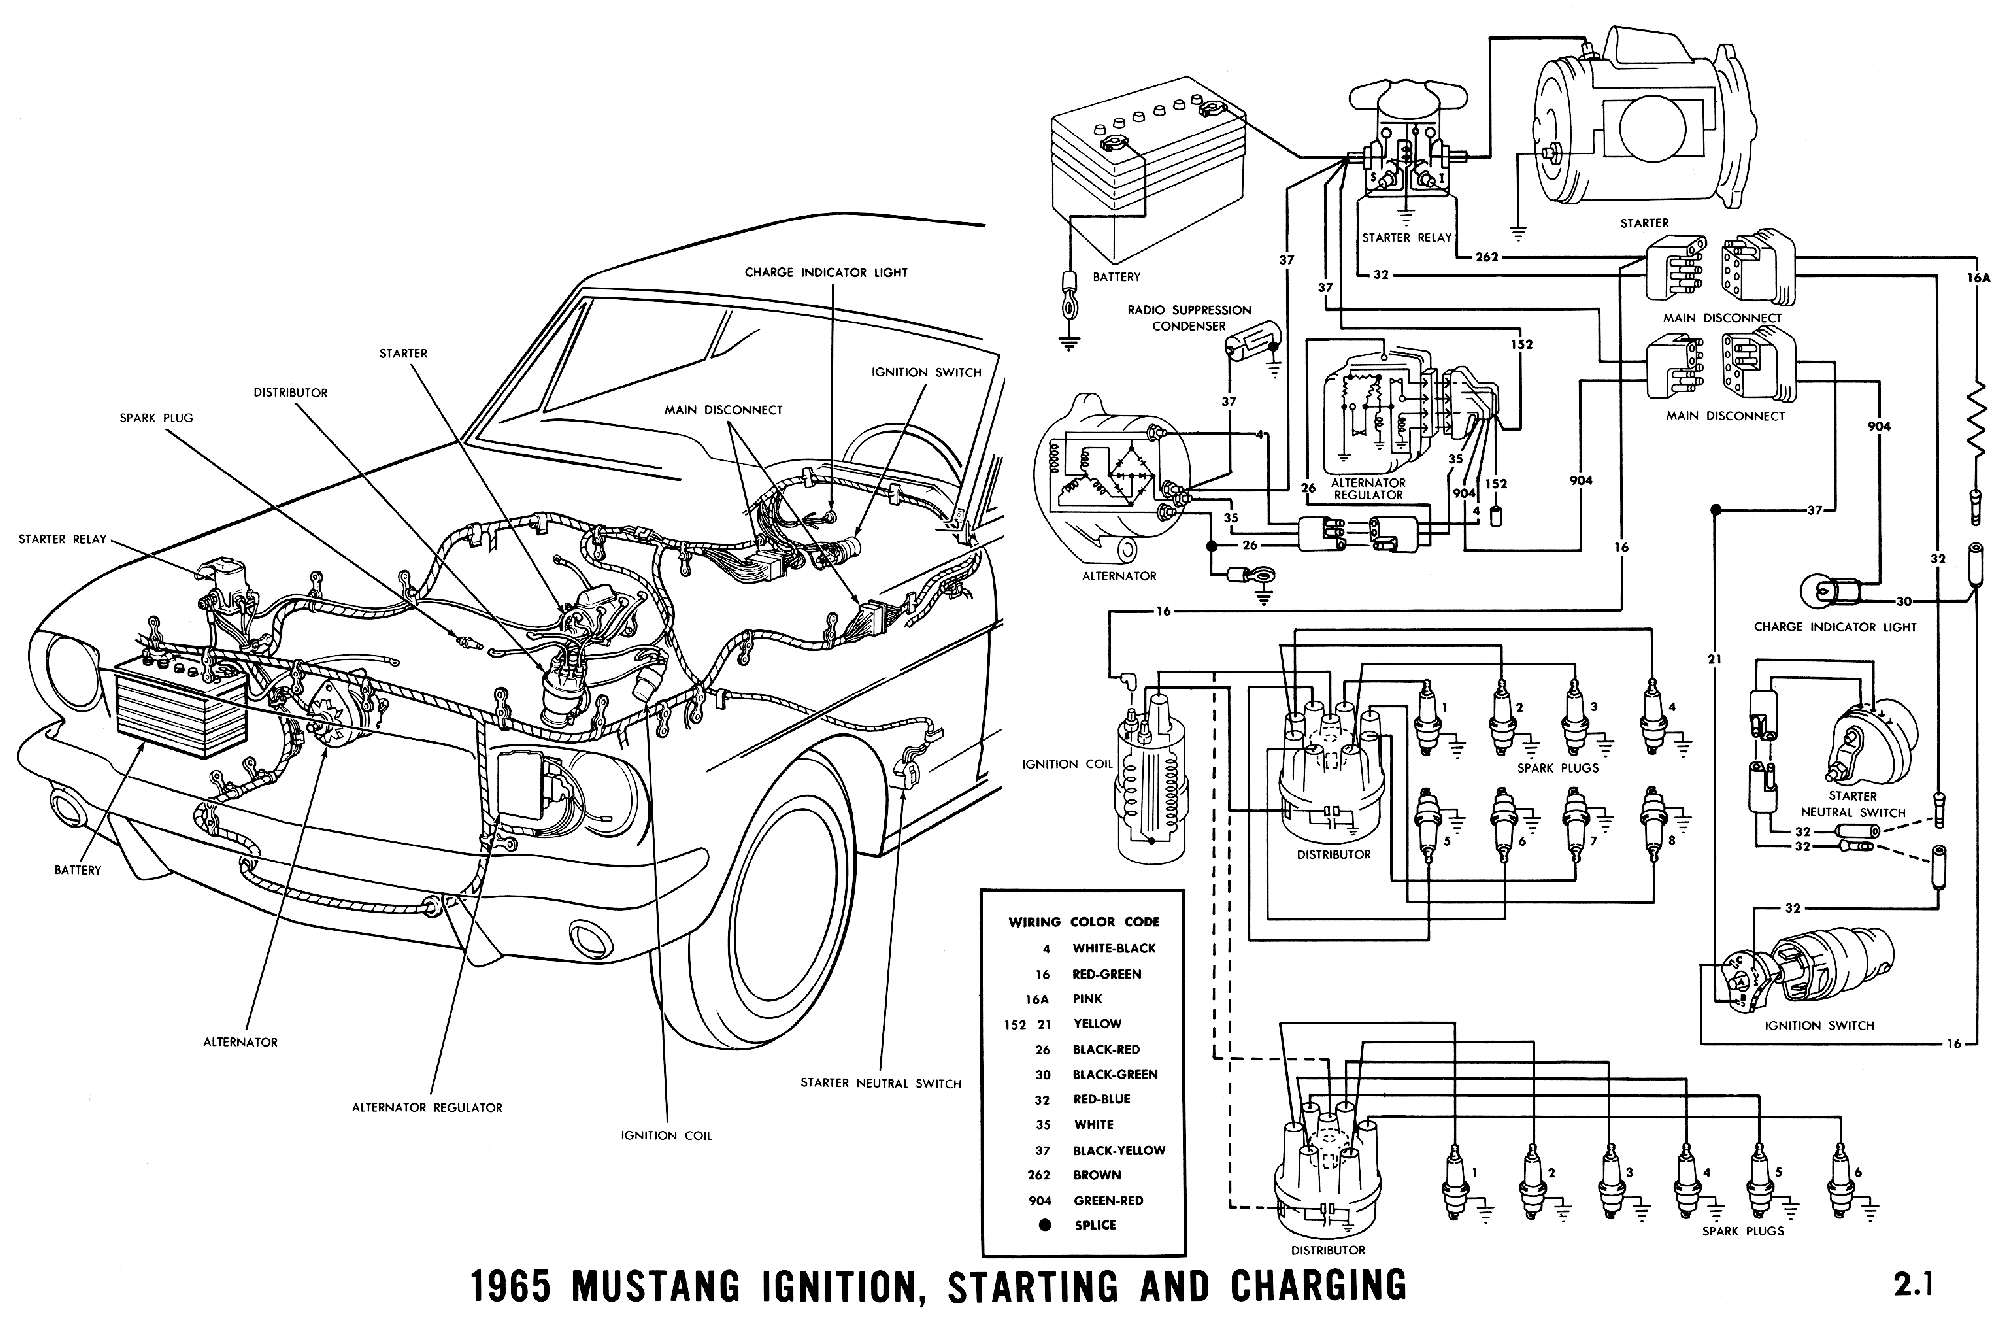 1965 Mustang Wiring Diagrams Average Joe Restoration Starter Solenoid Diagram With Attached Charging Pictorial And Schematic Alternator Regulator